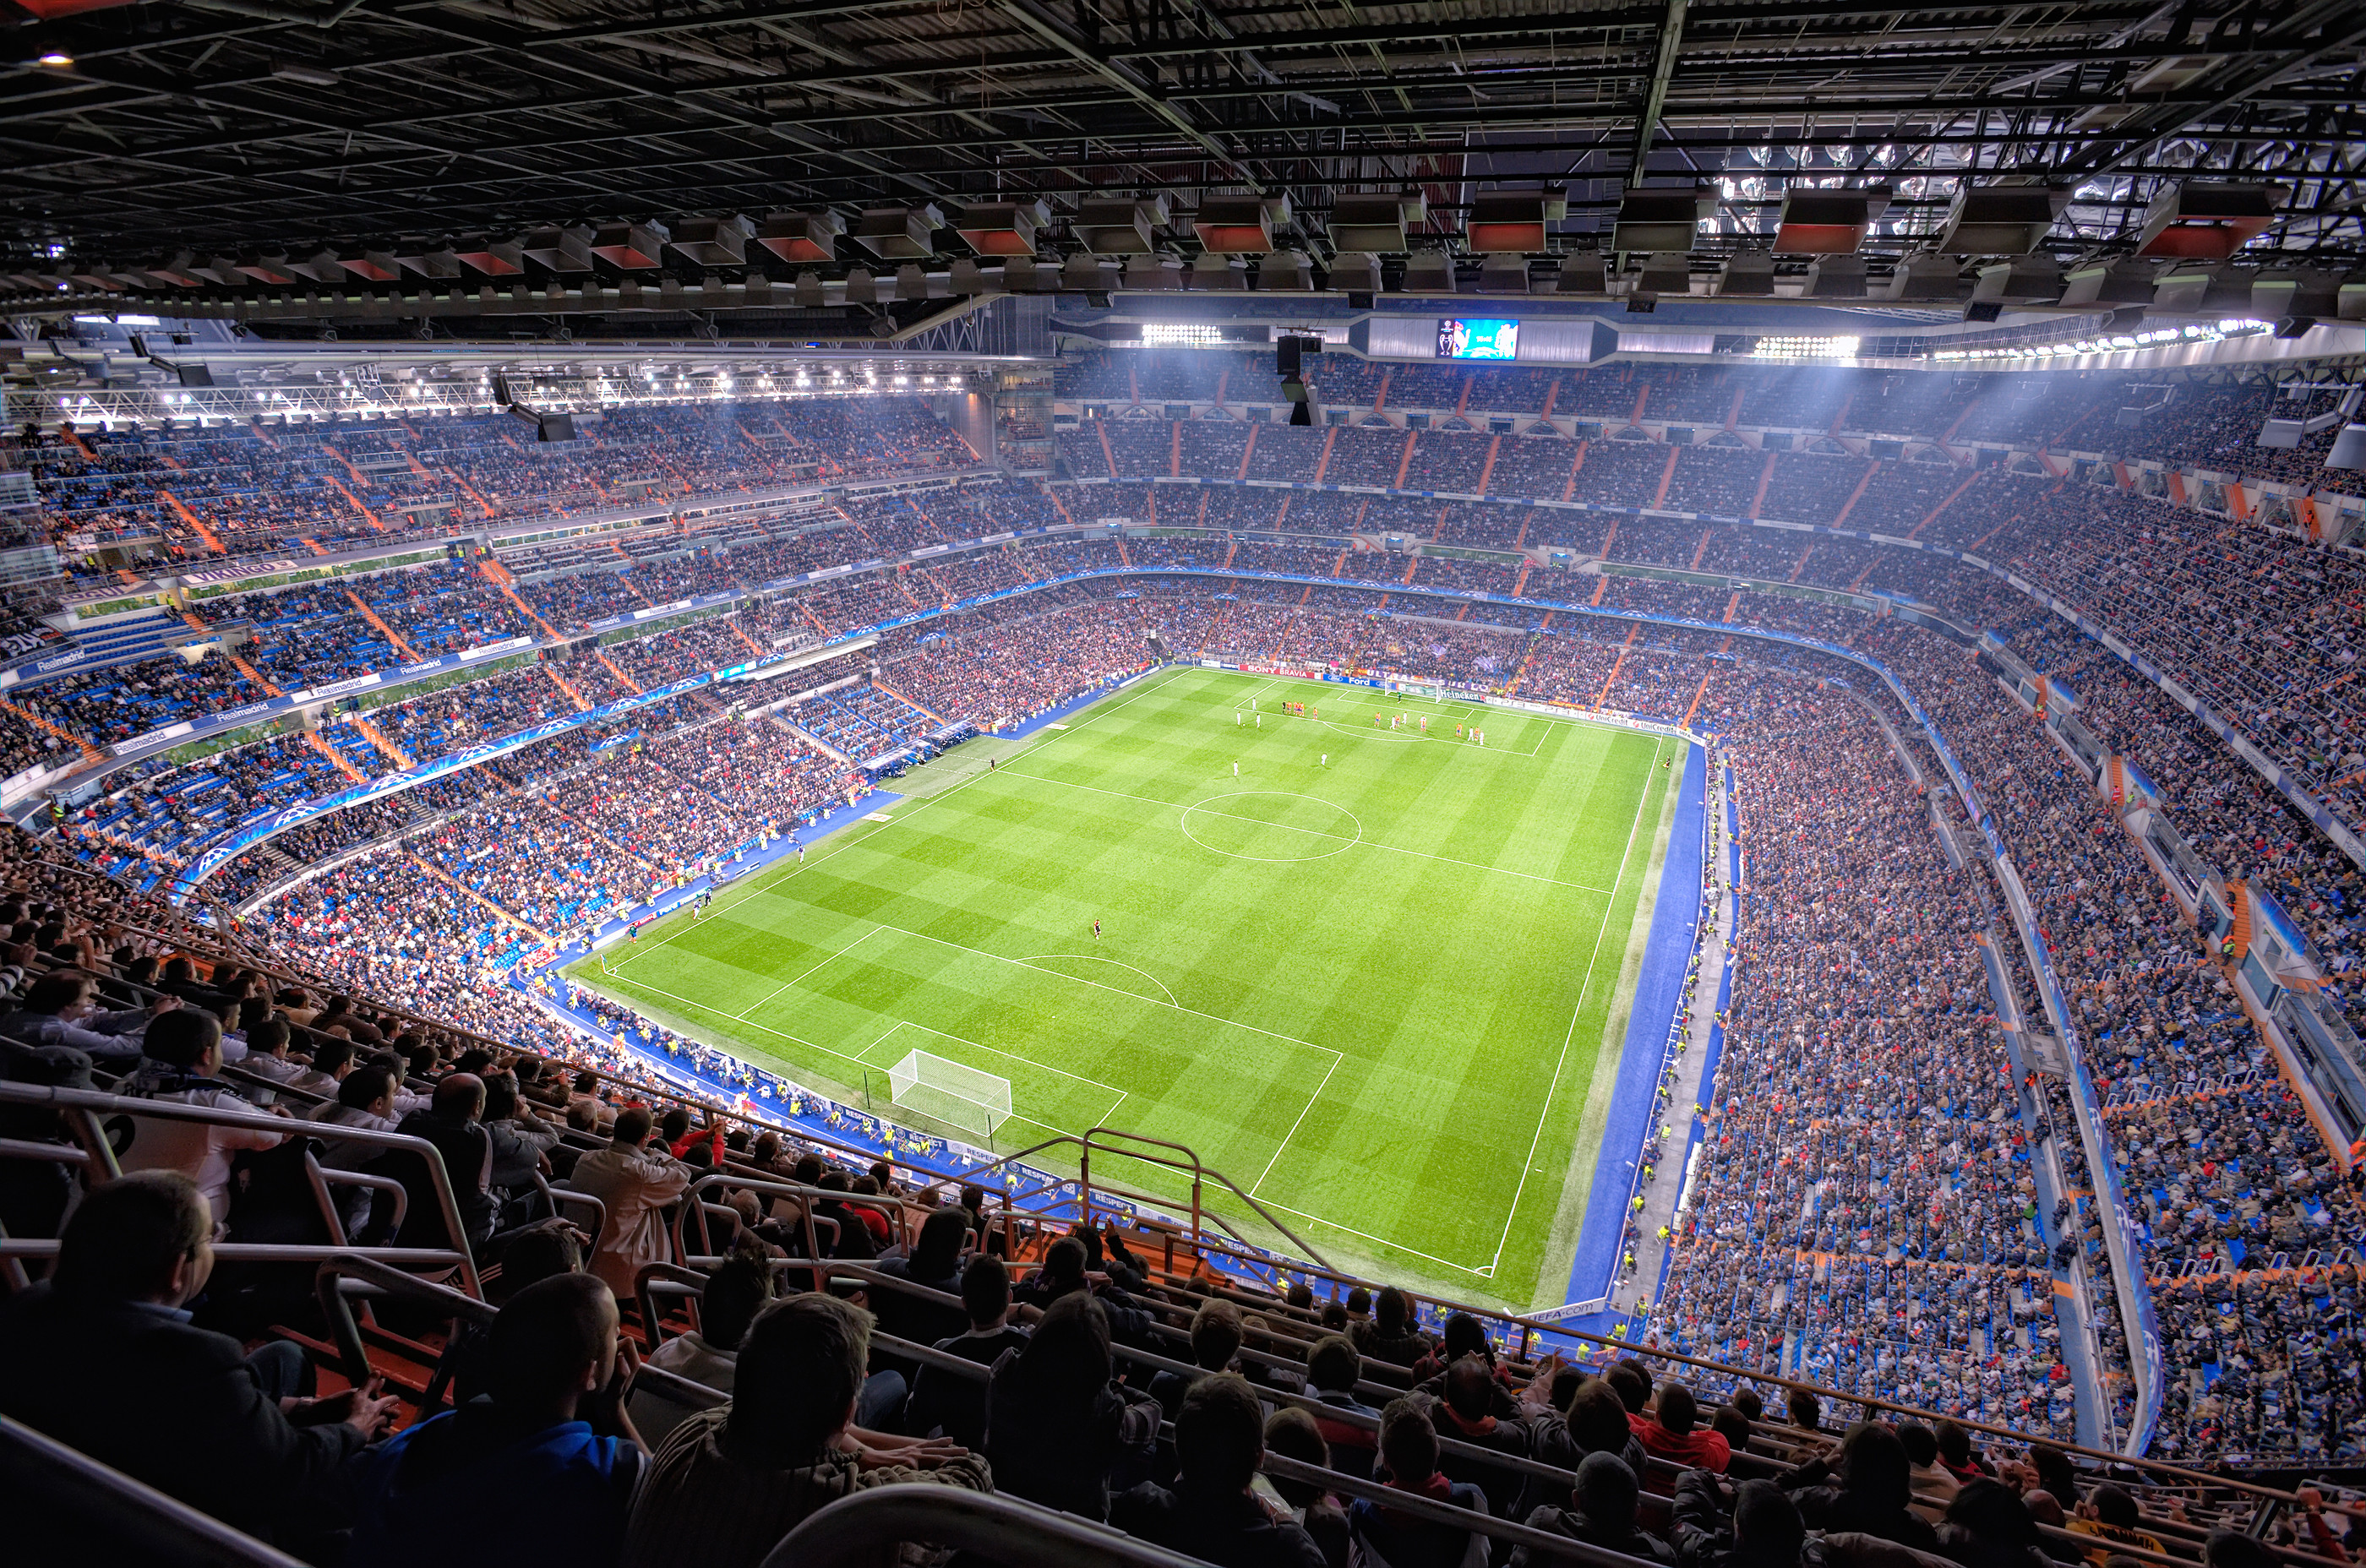 2800x1856 santiago bernabeu stadium real madrid football club wallpapers hd Wallpaper HD